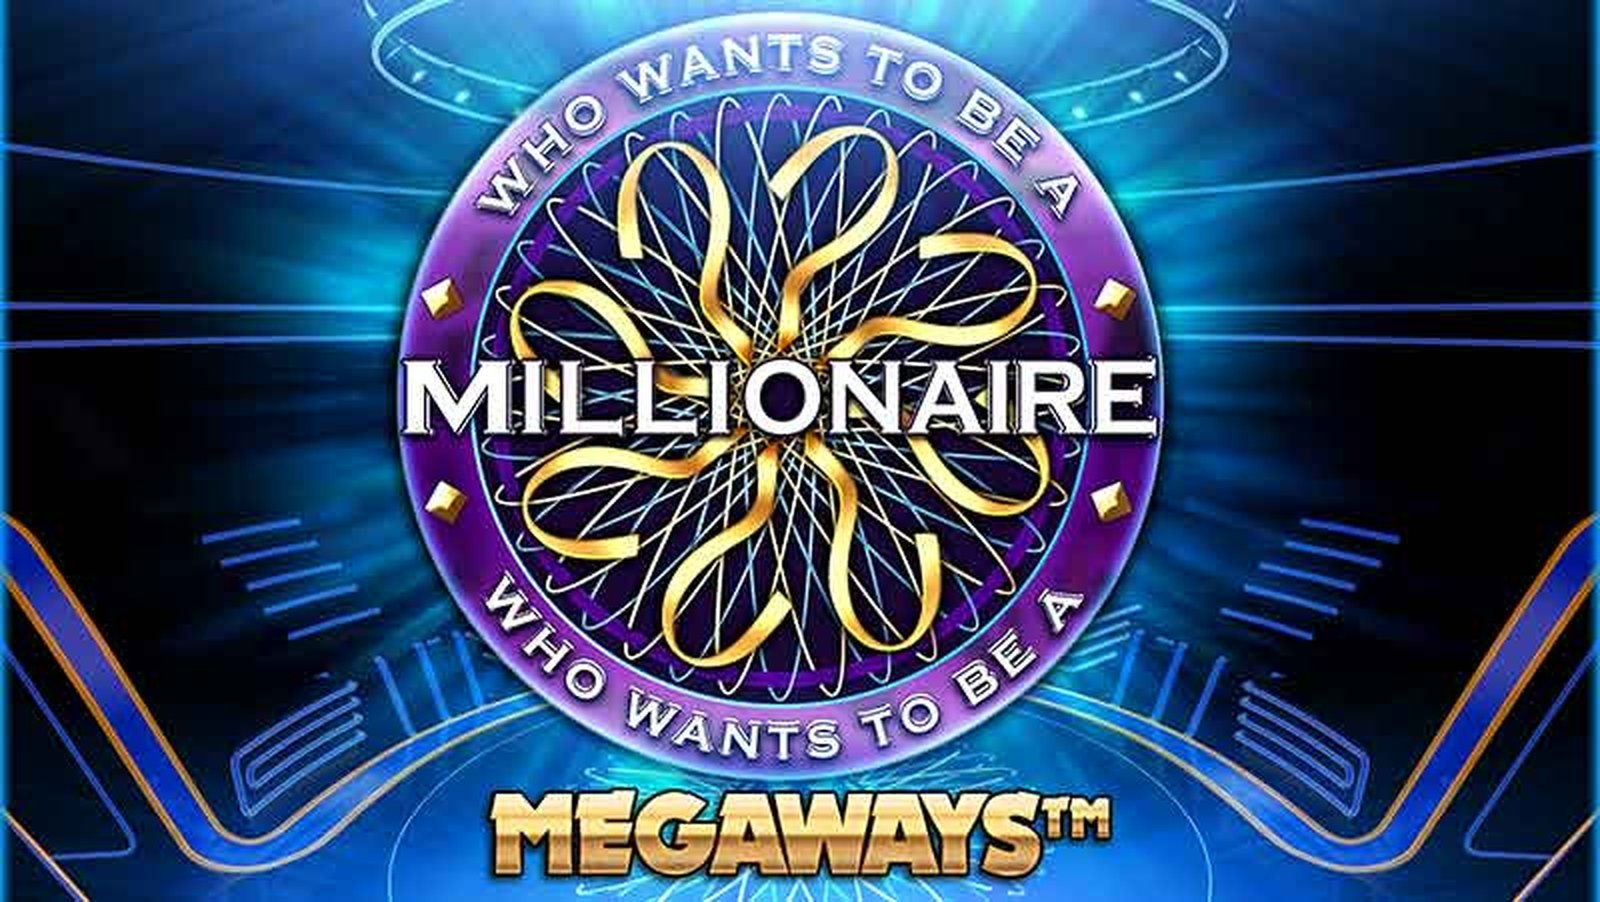 The Who Wants To Be A Millionaire Megaways Online Slot Demo Game by Big Time Gaming